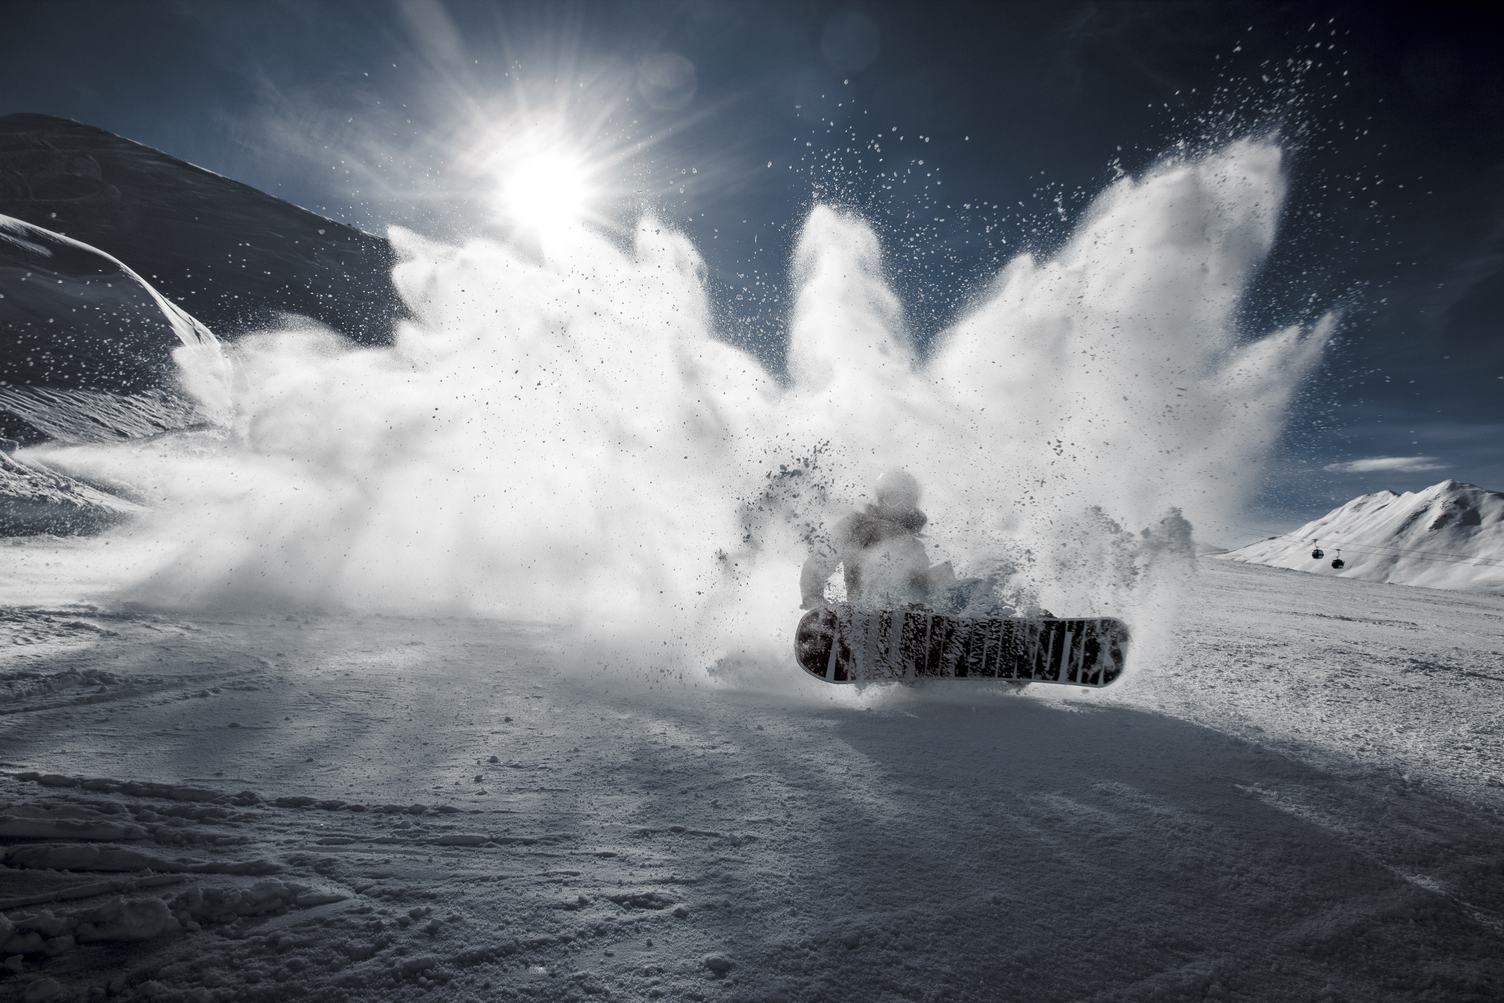 Snowboarder in Motion with Back Sun Light